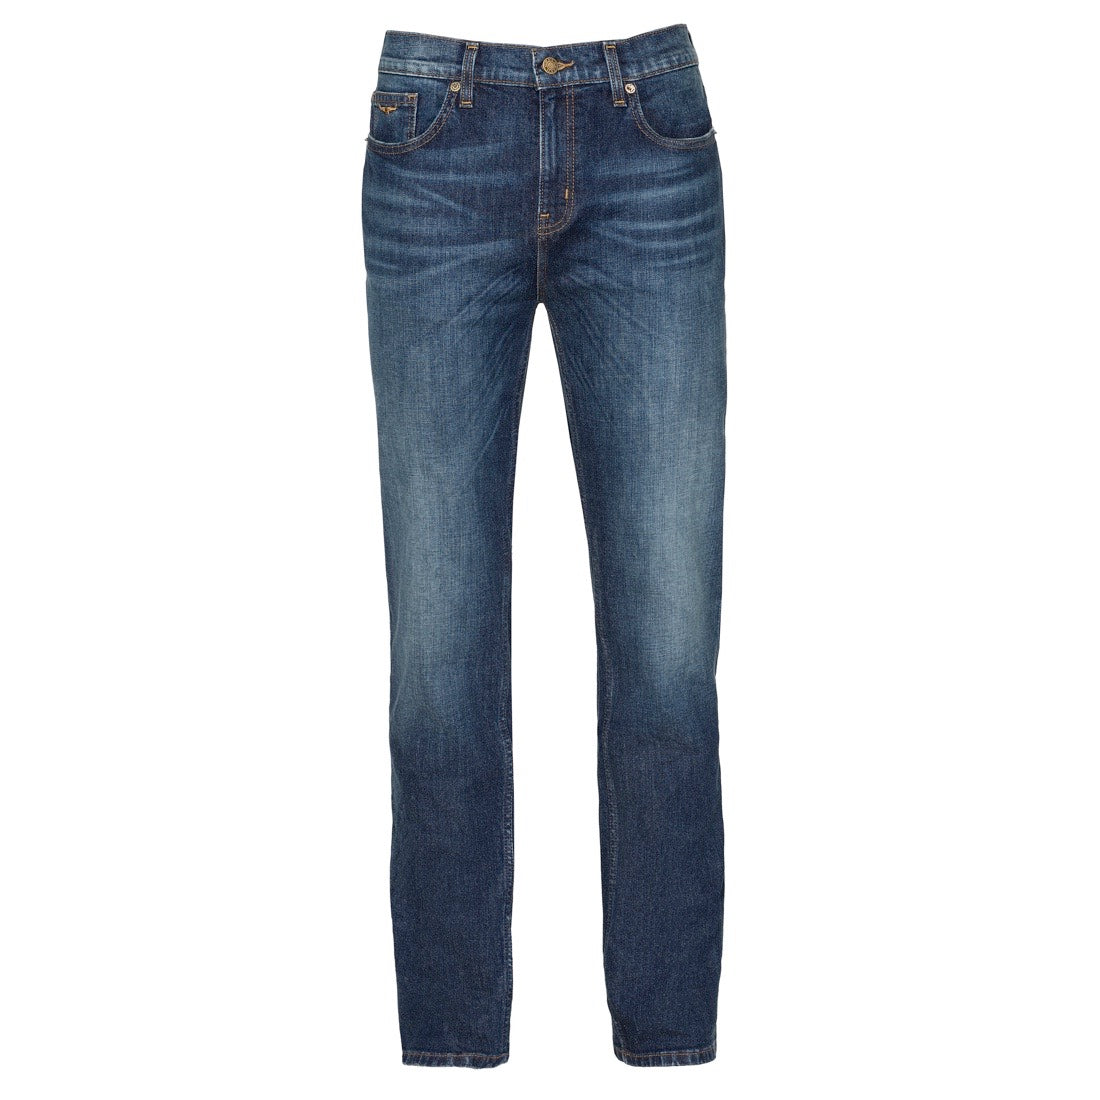 R.M.Williams Ramco Jeans Medium Wash